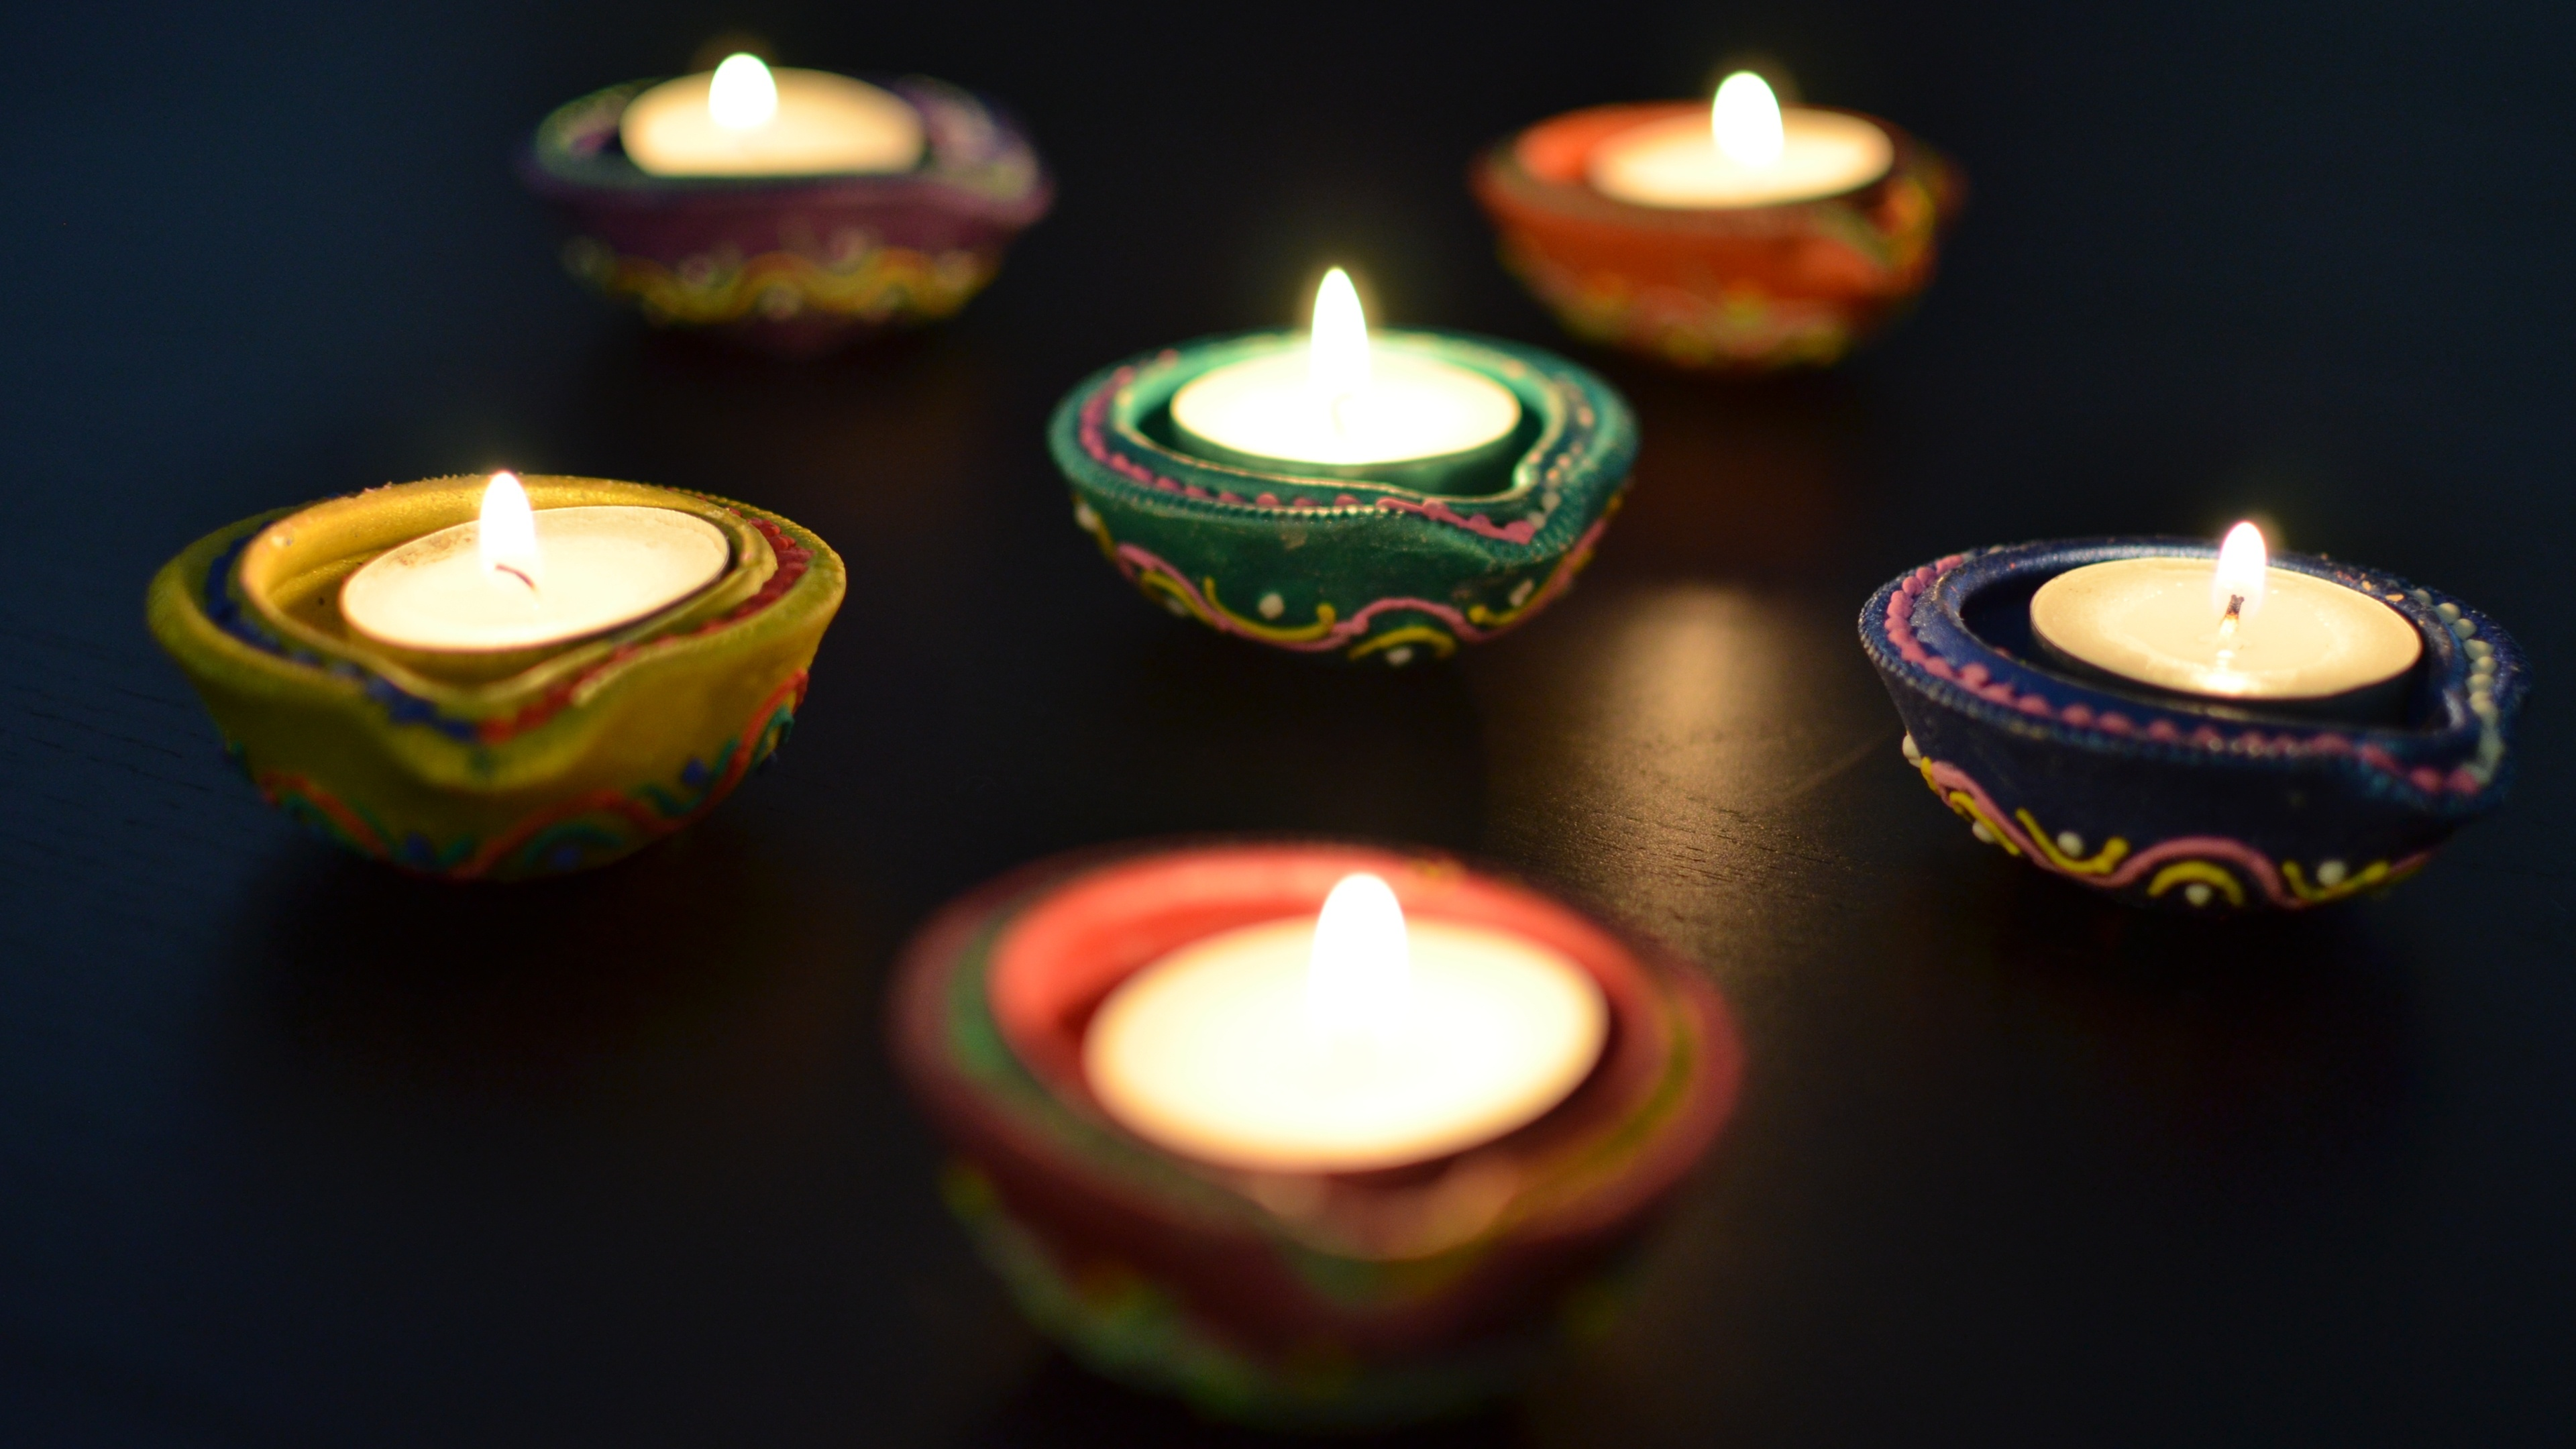 Earthen Lamp Diwali Diwali Clay Lamps Wallpapers 3840x2160 1333891